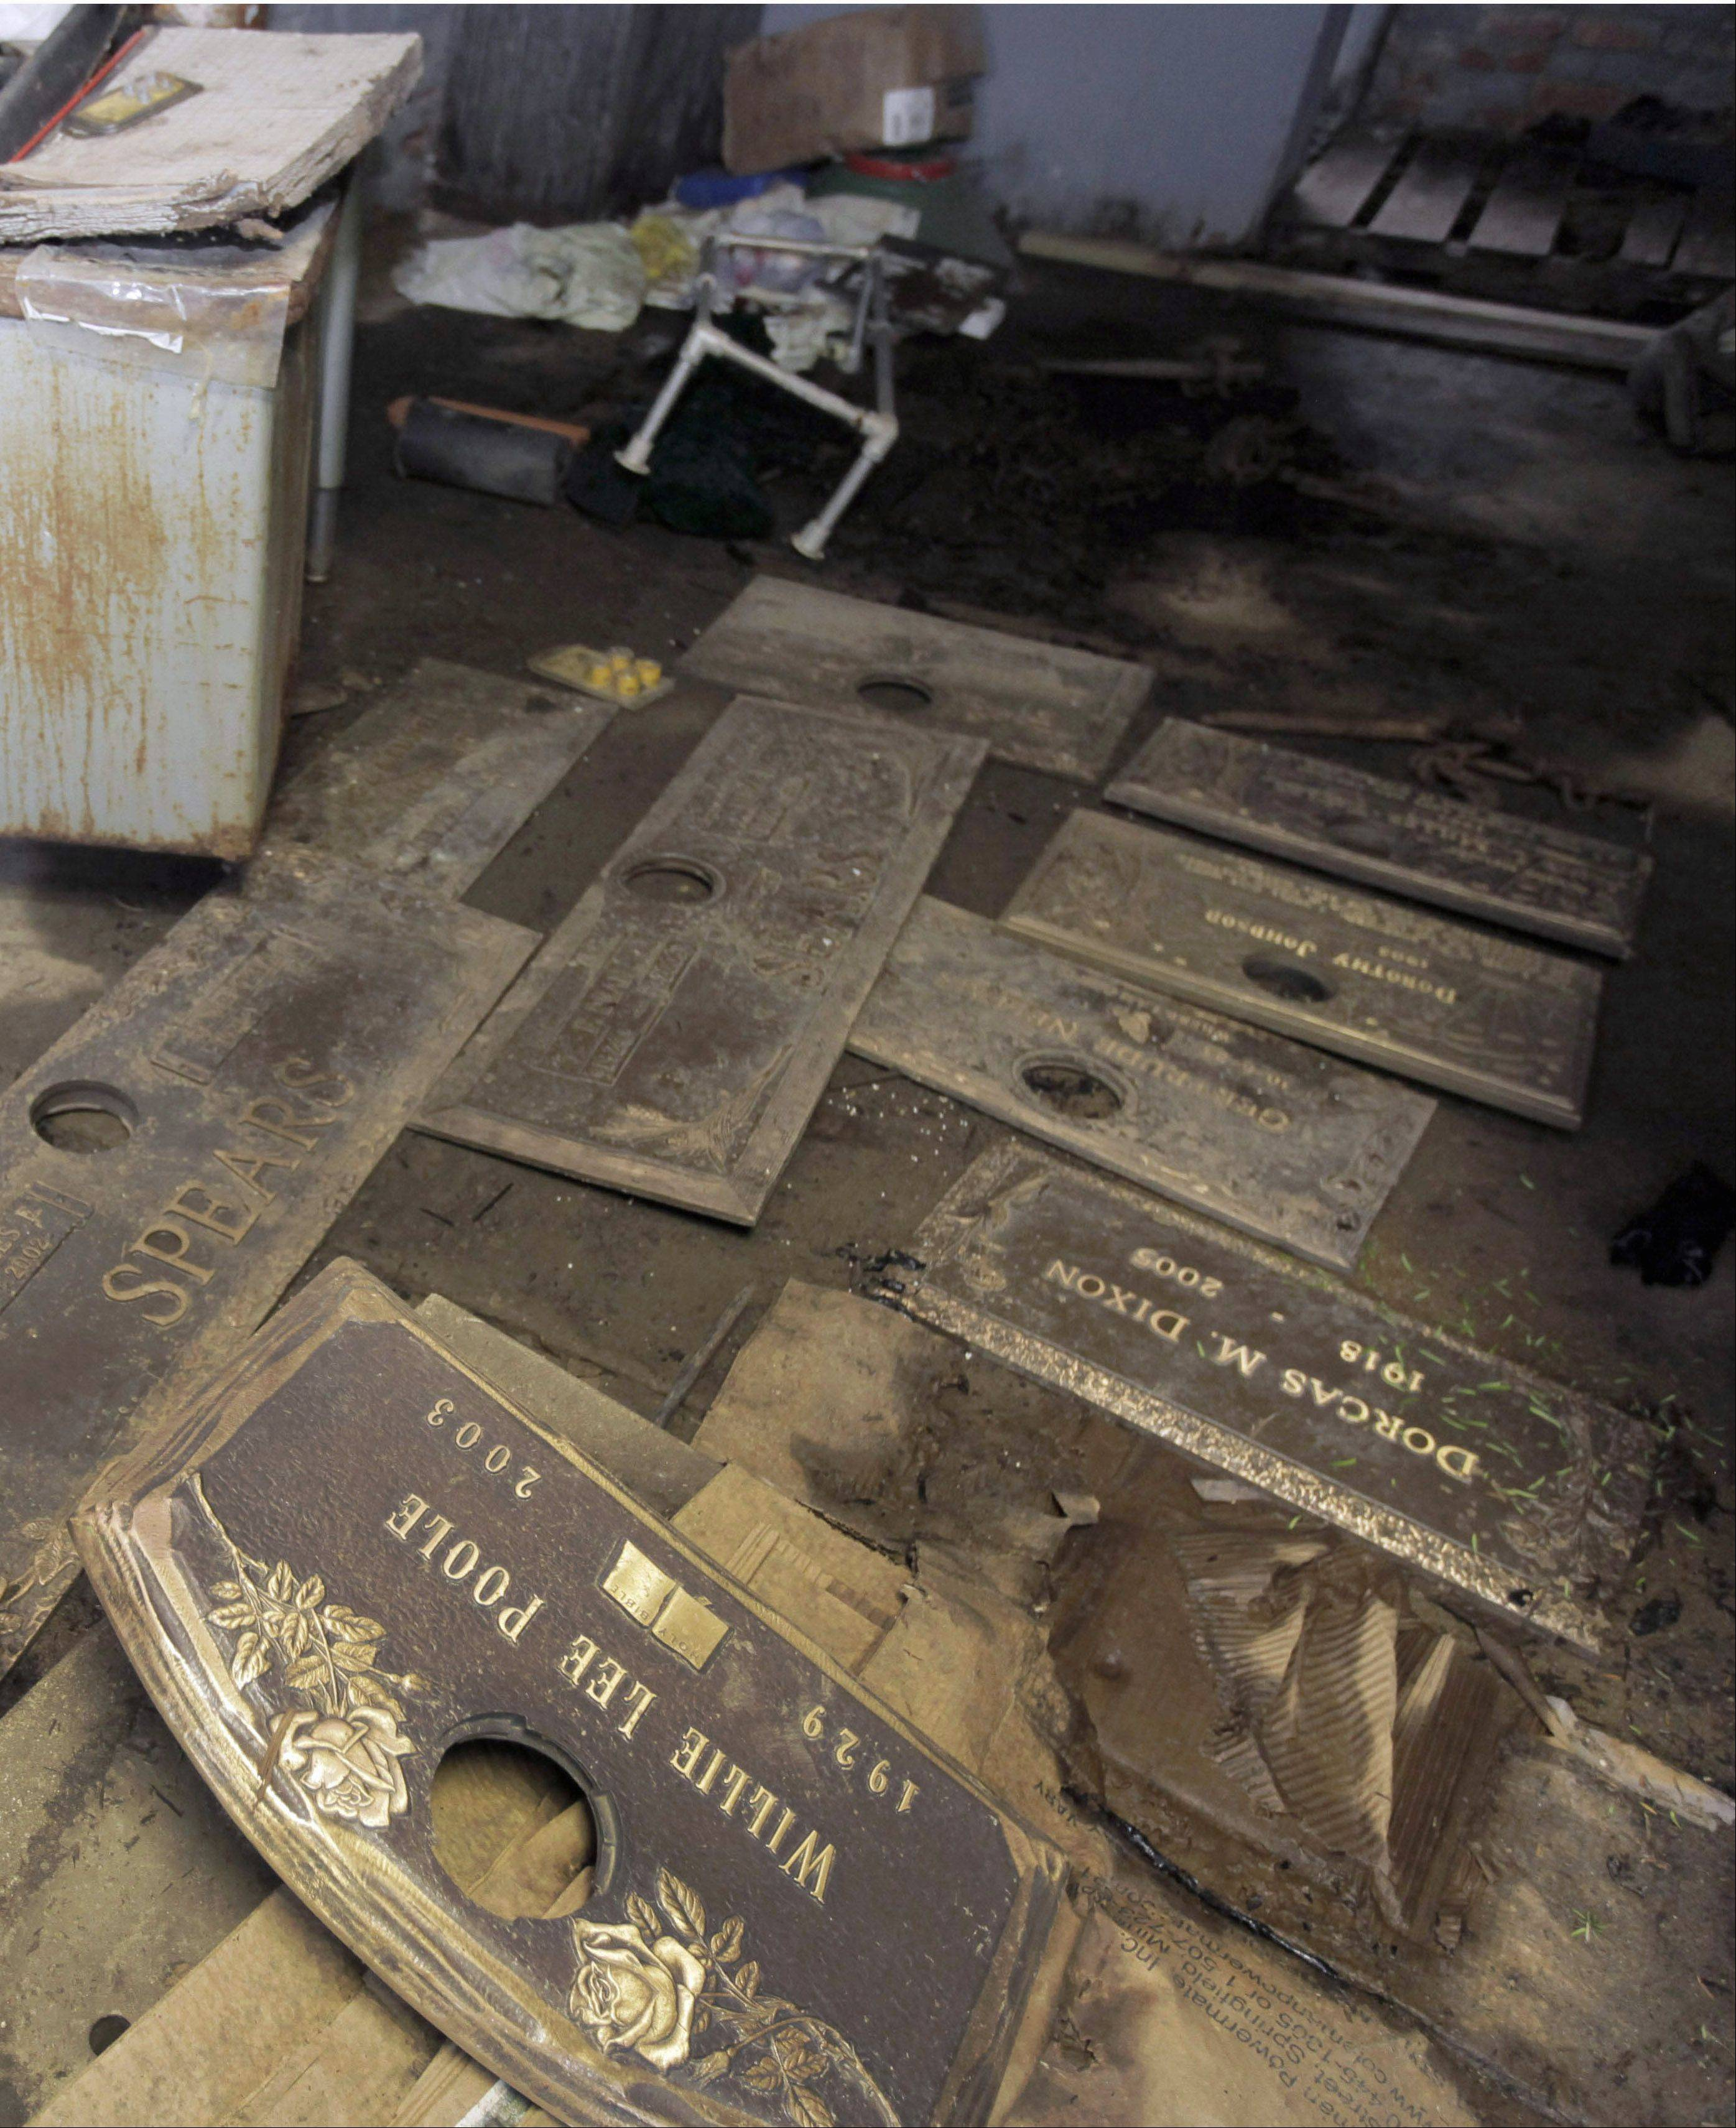 Grave markers were found scattered on the floor of a shack in 2009 at the Burr Oak Cemetery in Alsip. The cemetery's former director pleaded guilty Friday to moneymaking scheme that involved digging up bodies and reselling plots.